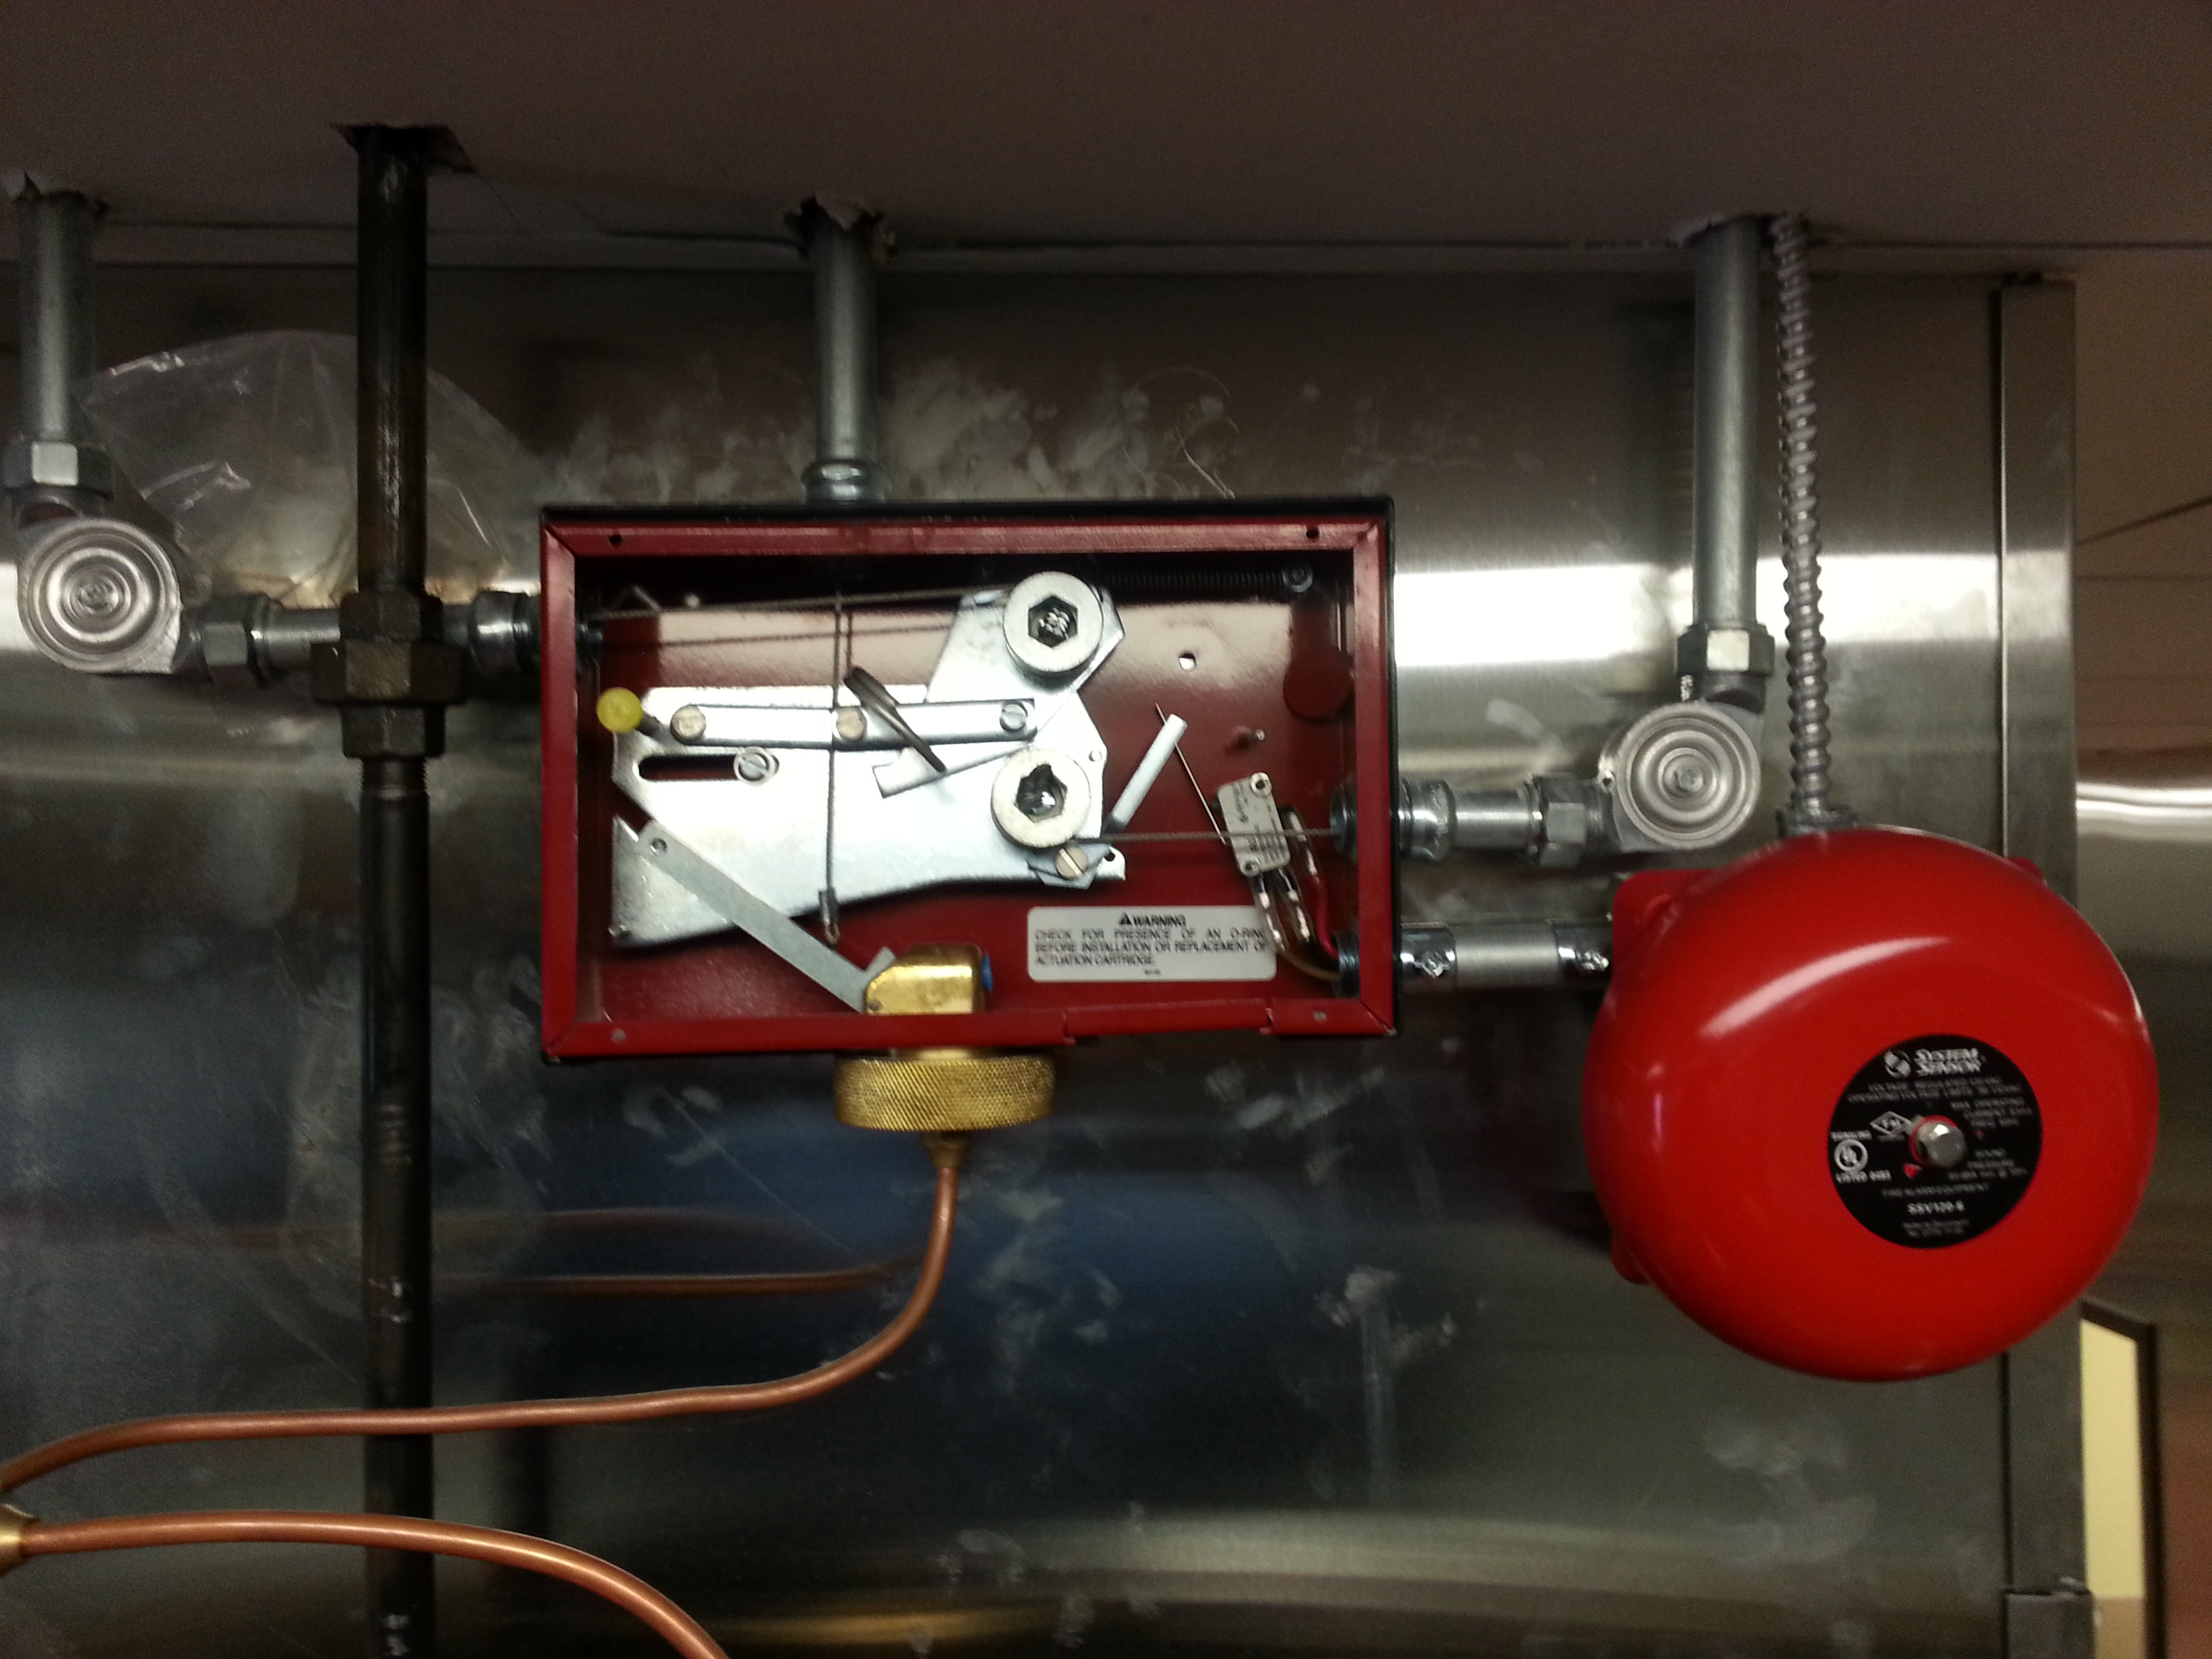 Kitchen Fire Suppression Systems | Dallas Fire Extinguisher Service ...